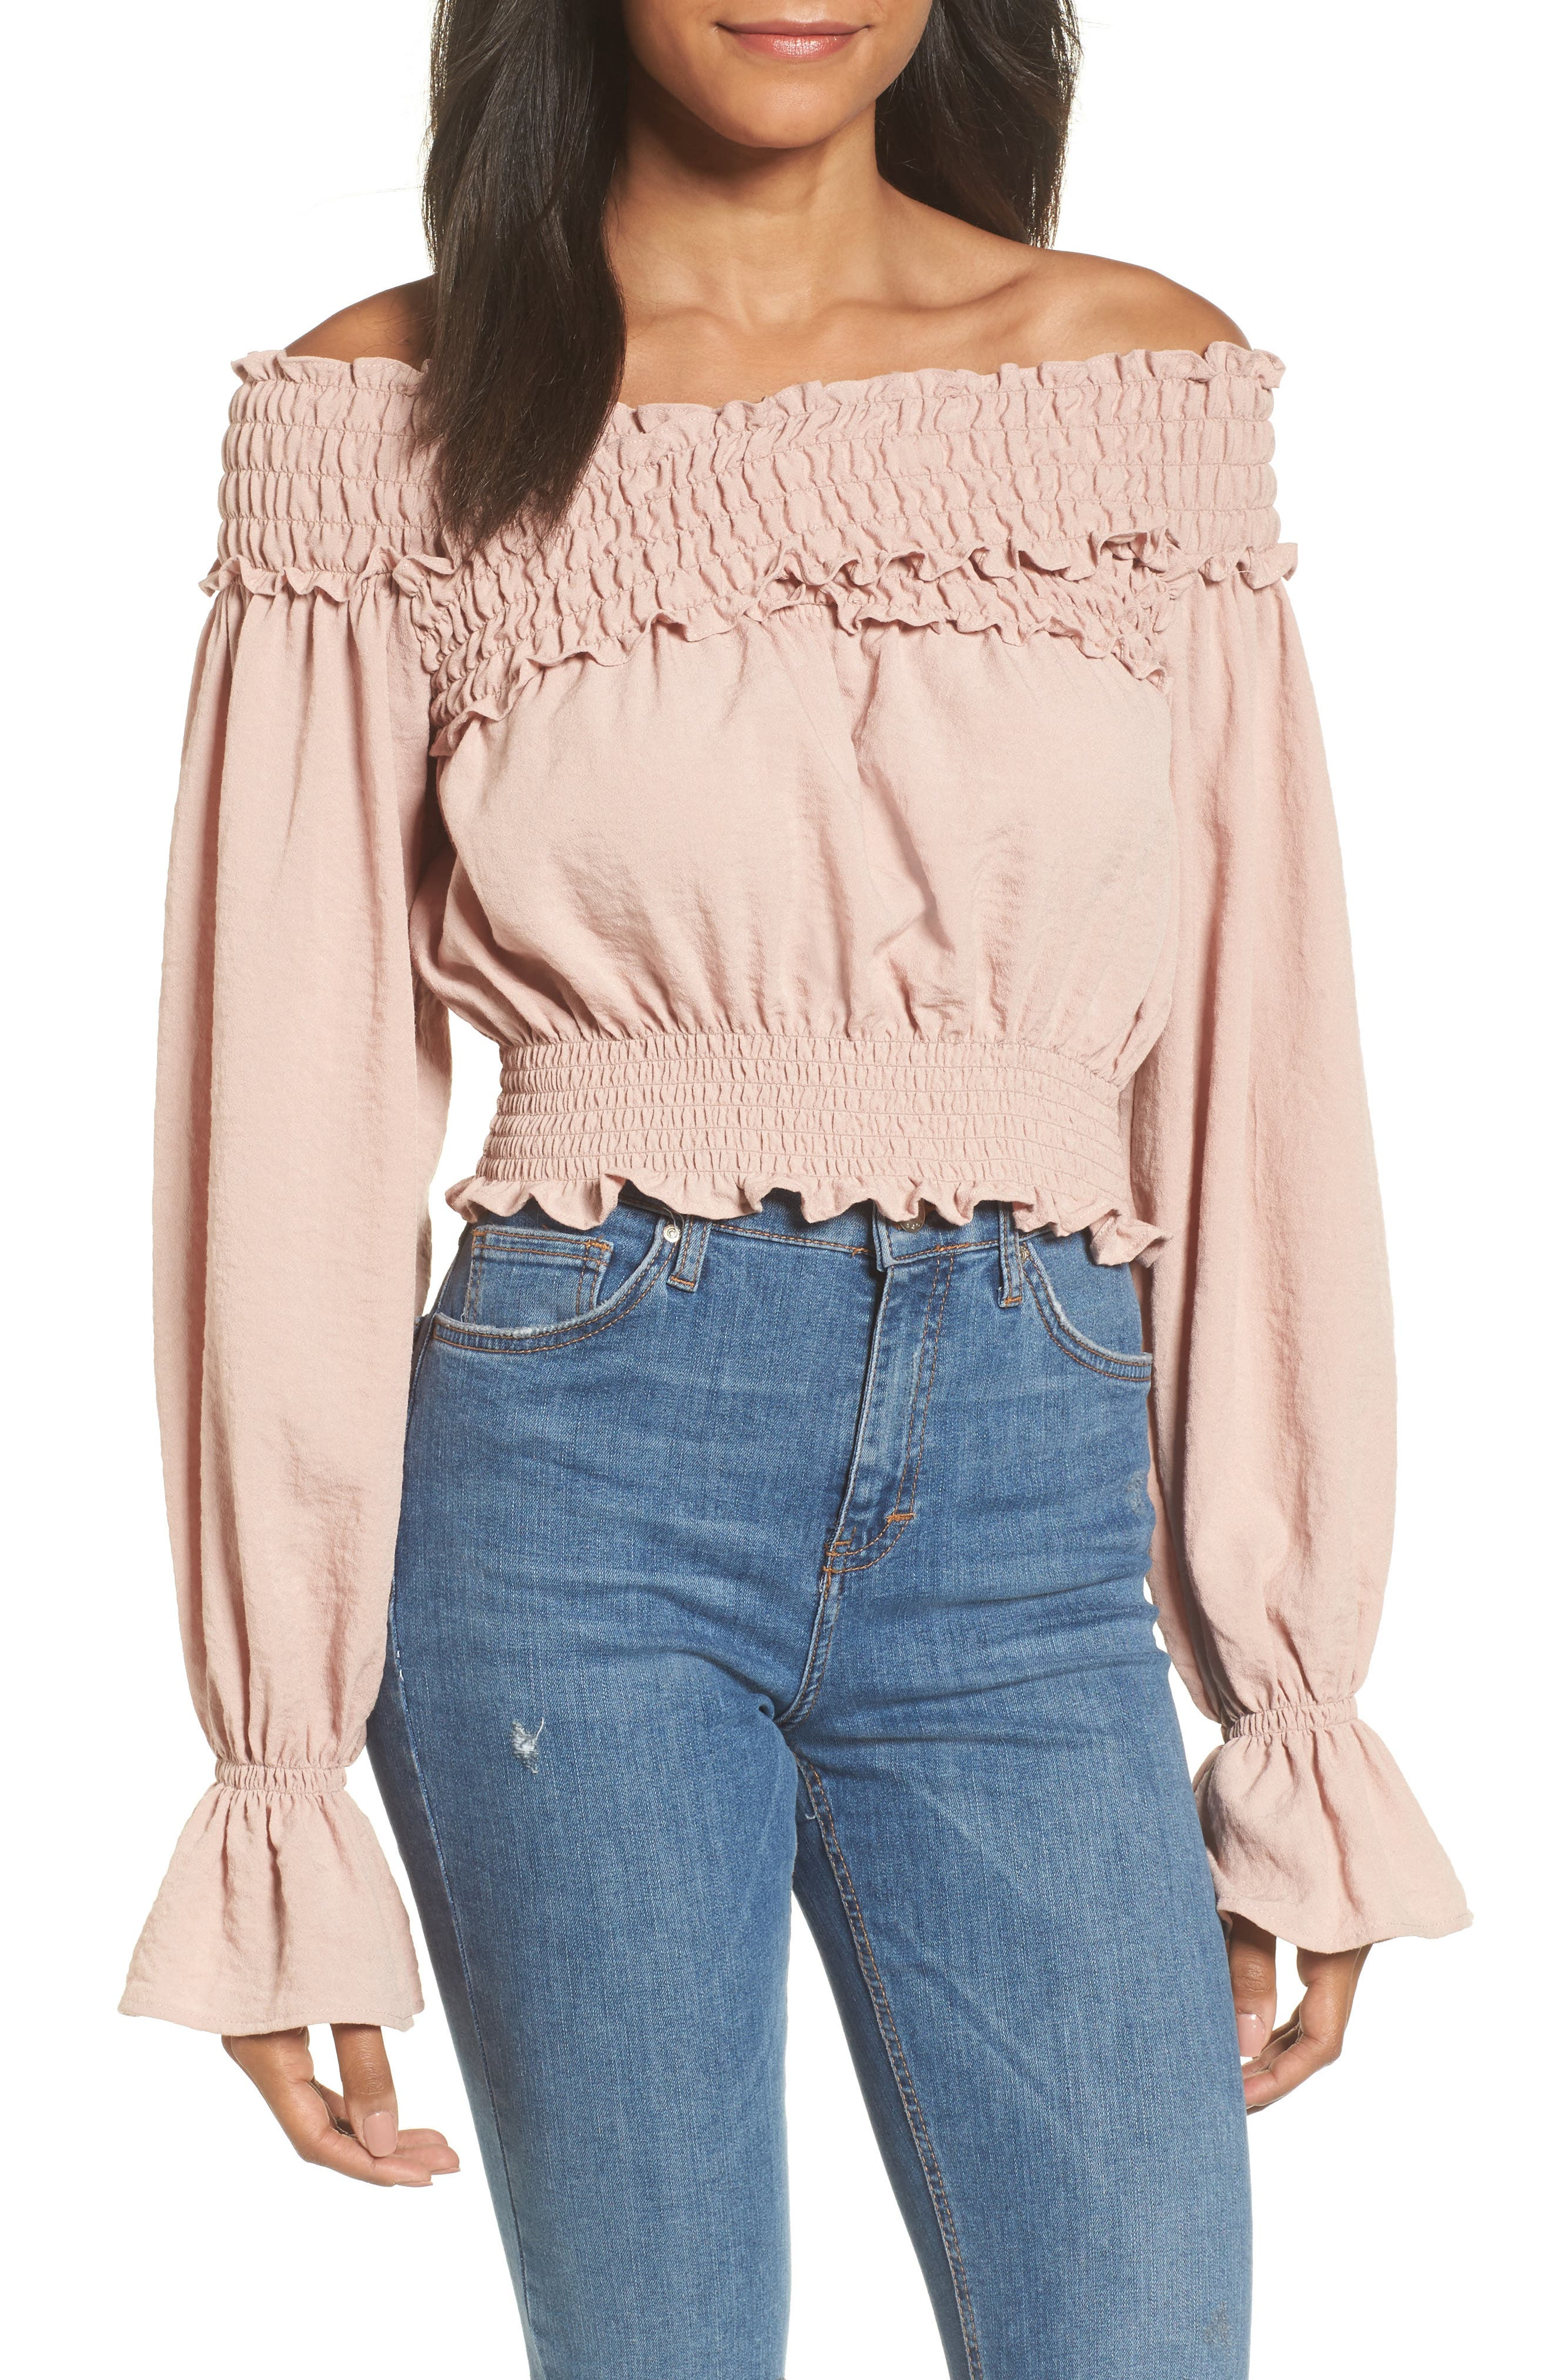 Alternate Image 1 Selected - Tularosa Delany Off the Shoulder Crop Top